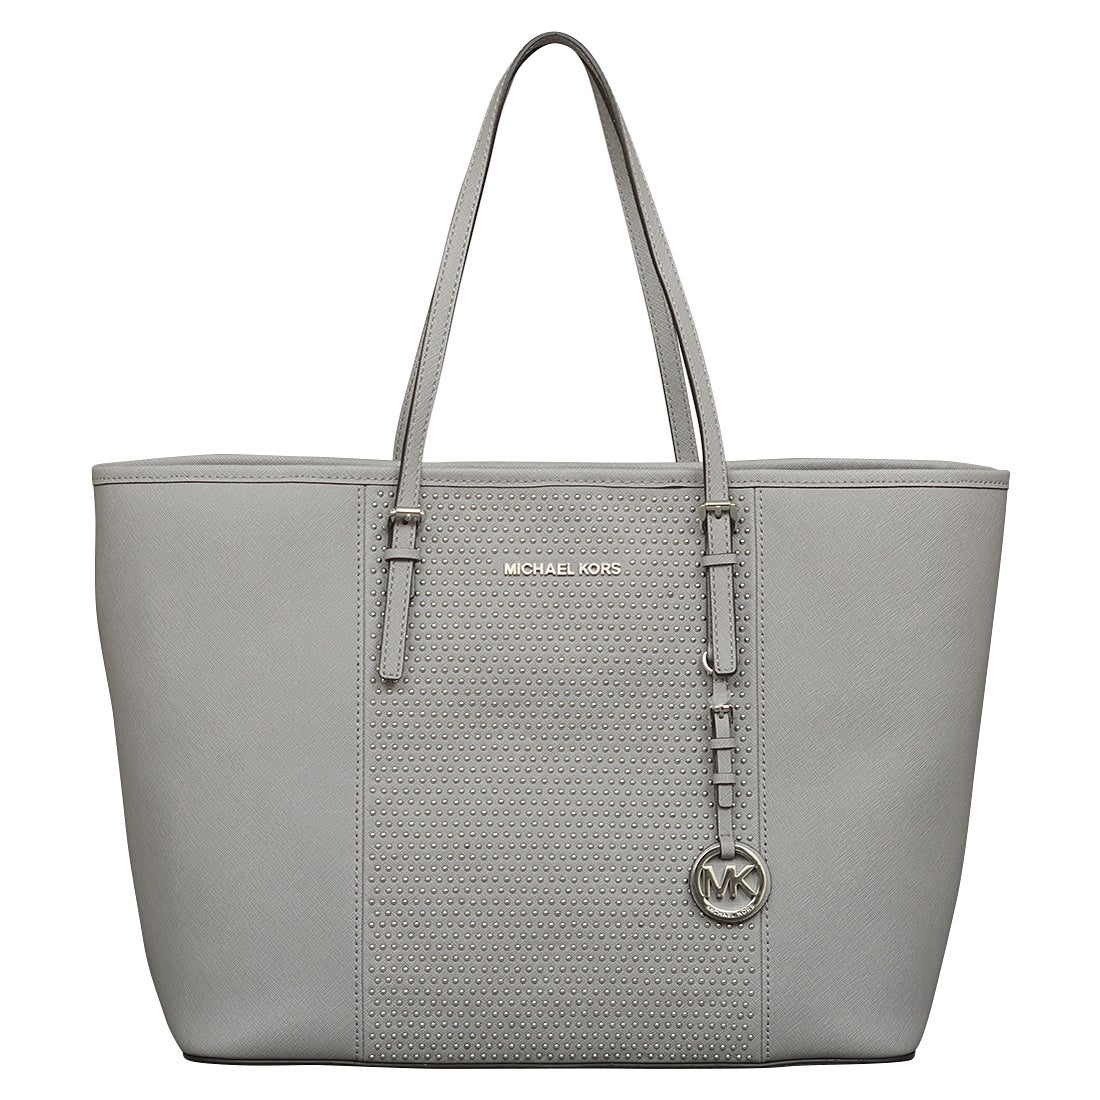 a2fb257c4c56 Shop Michael Kors Medium Microstud Center Stripe Pearl Grey Travel Tote Bag  - Free Shipping Today - Overstock - 12023449